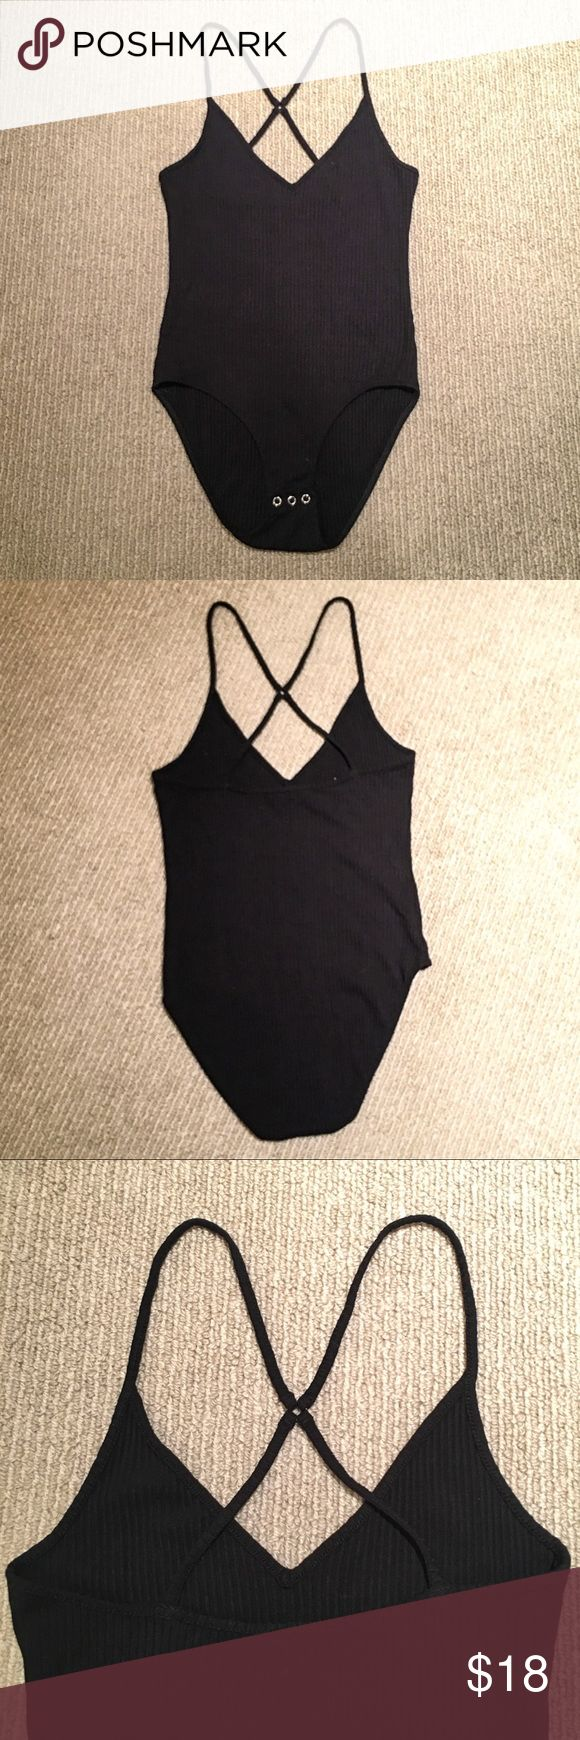 Topshop Black Strappy Bodysuit This black size 8 bodysuit by Topshop has subtle ribbing and comfortably stretchy fabric. It has three silver snaps at the bottom and thin straps that cross in the back. **Never been worn! Topshop Tops Tank Tops